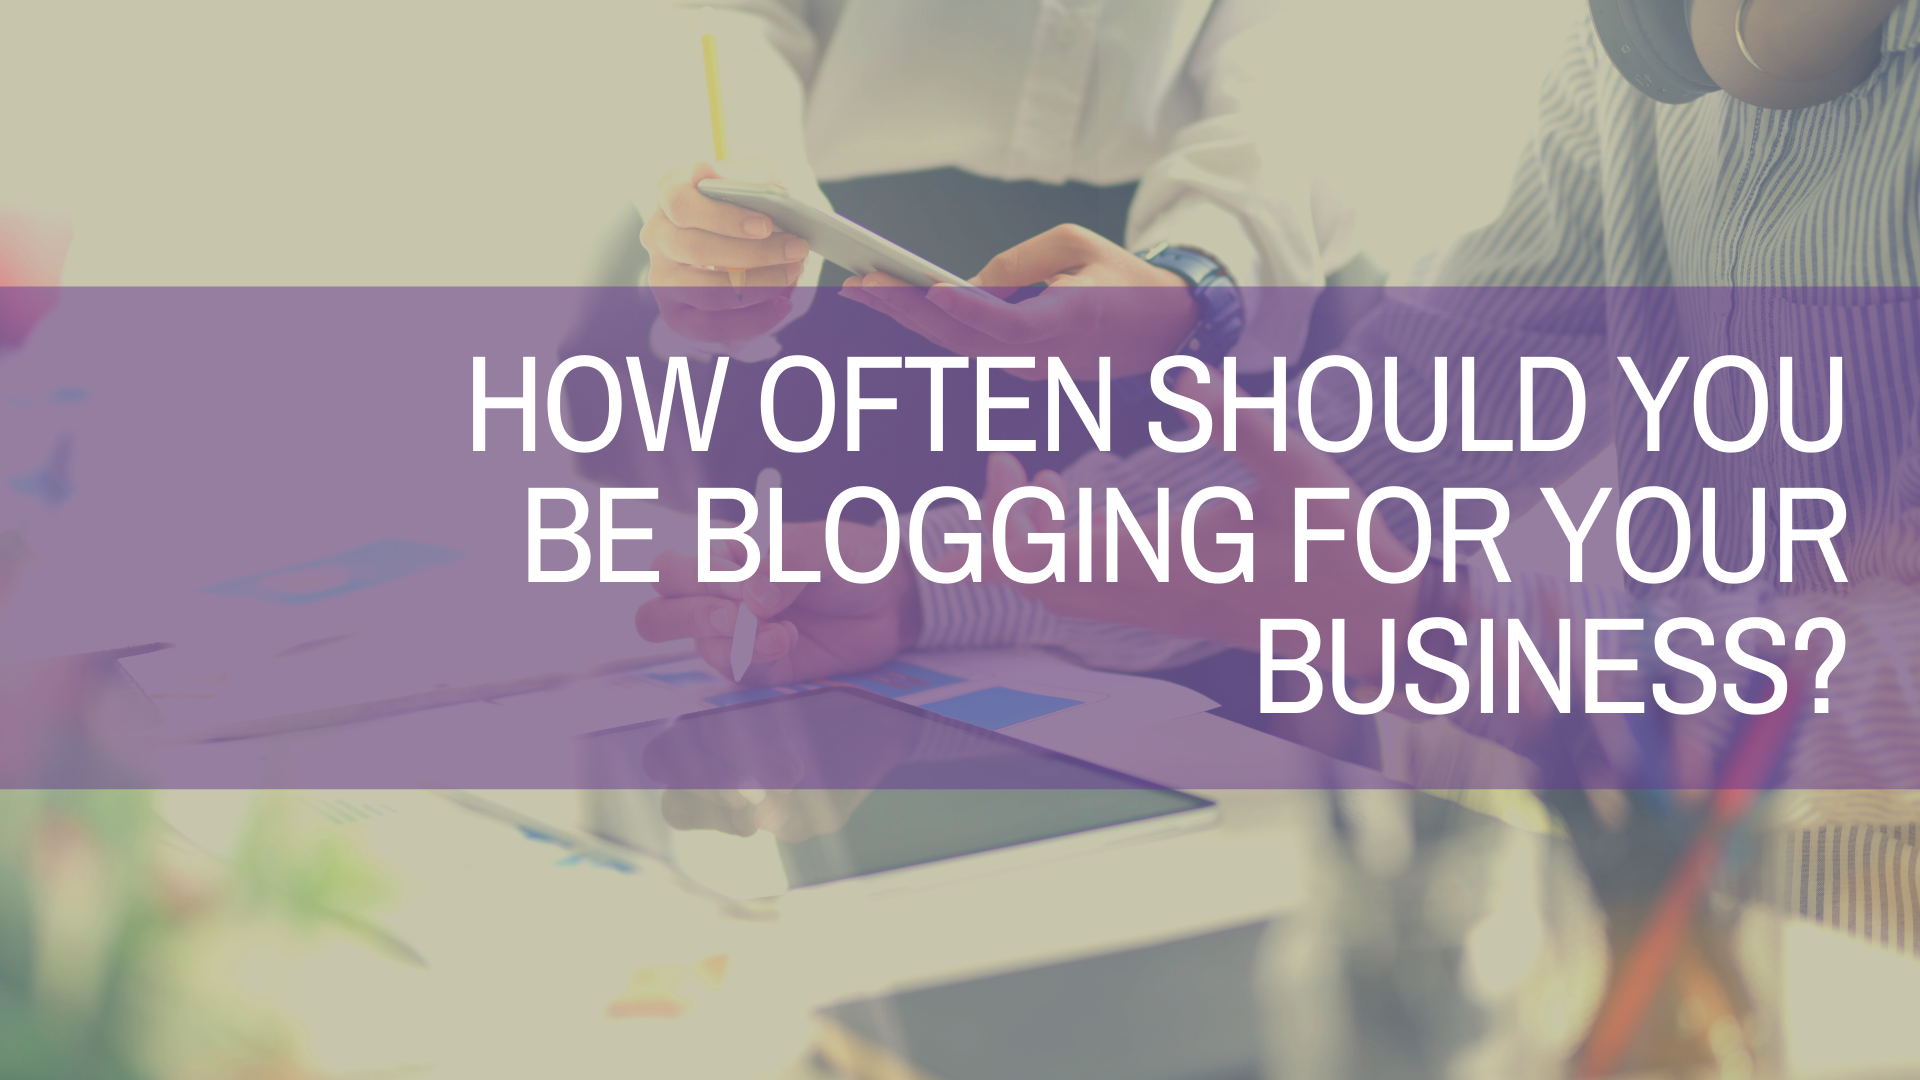 How Often Should I Be Blogging for My Business?